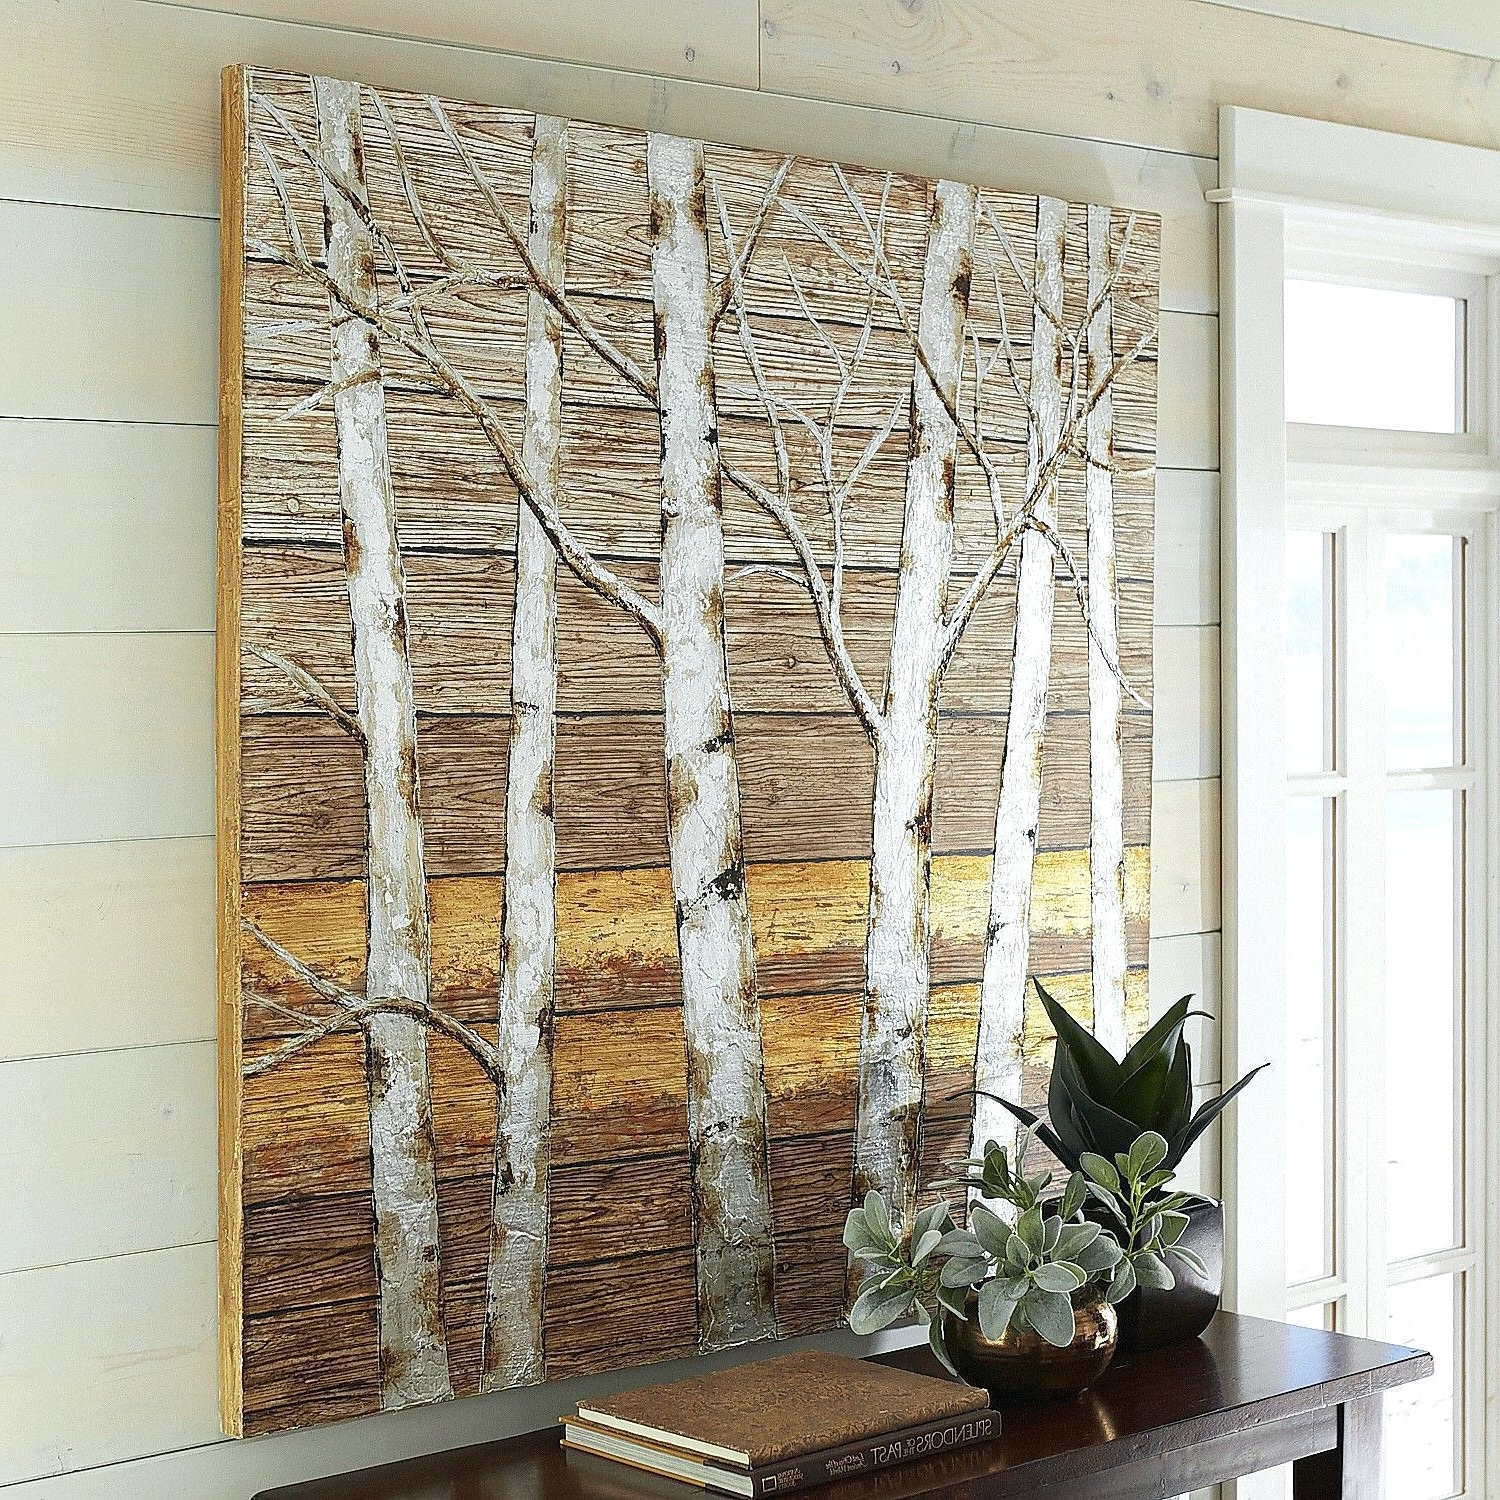 Newest Pier 1 Wall Art With Metallic Birch Trees Wall Art Pier 1 Imports One Decor (View 8 of 15)